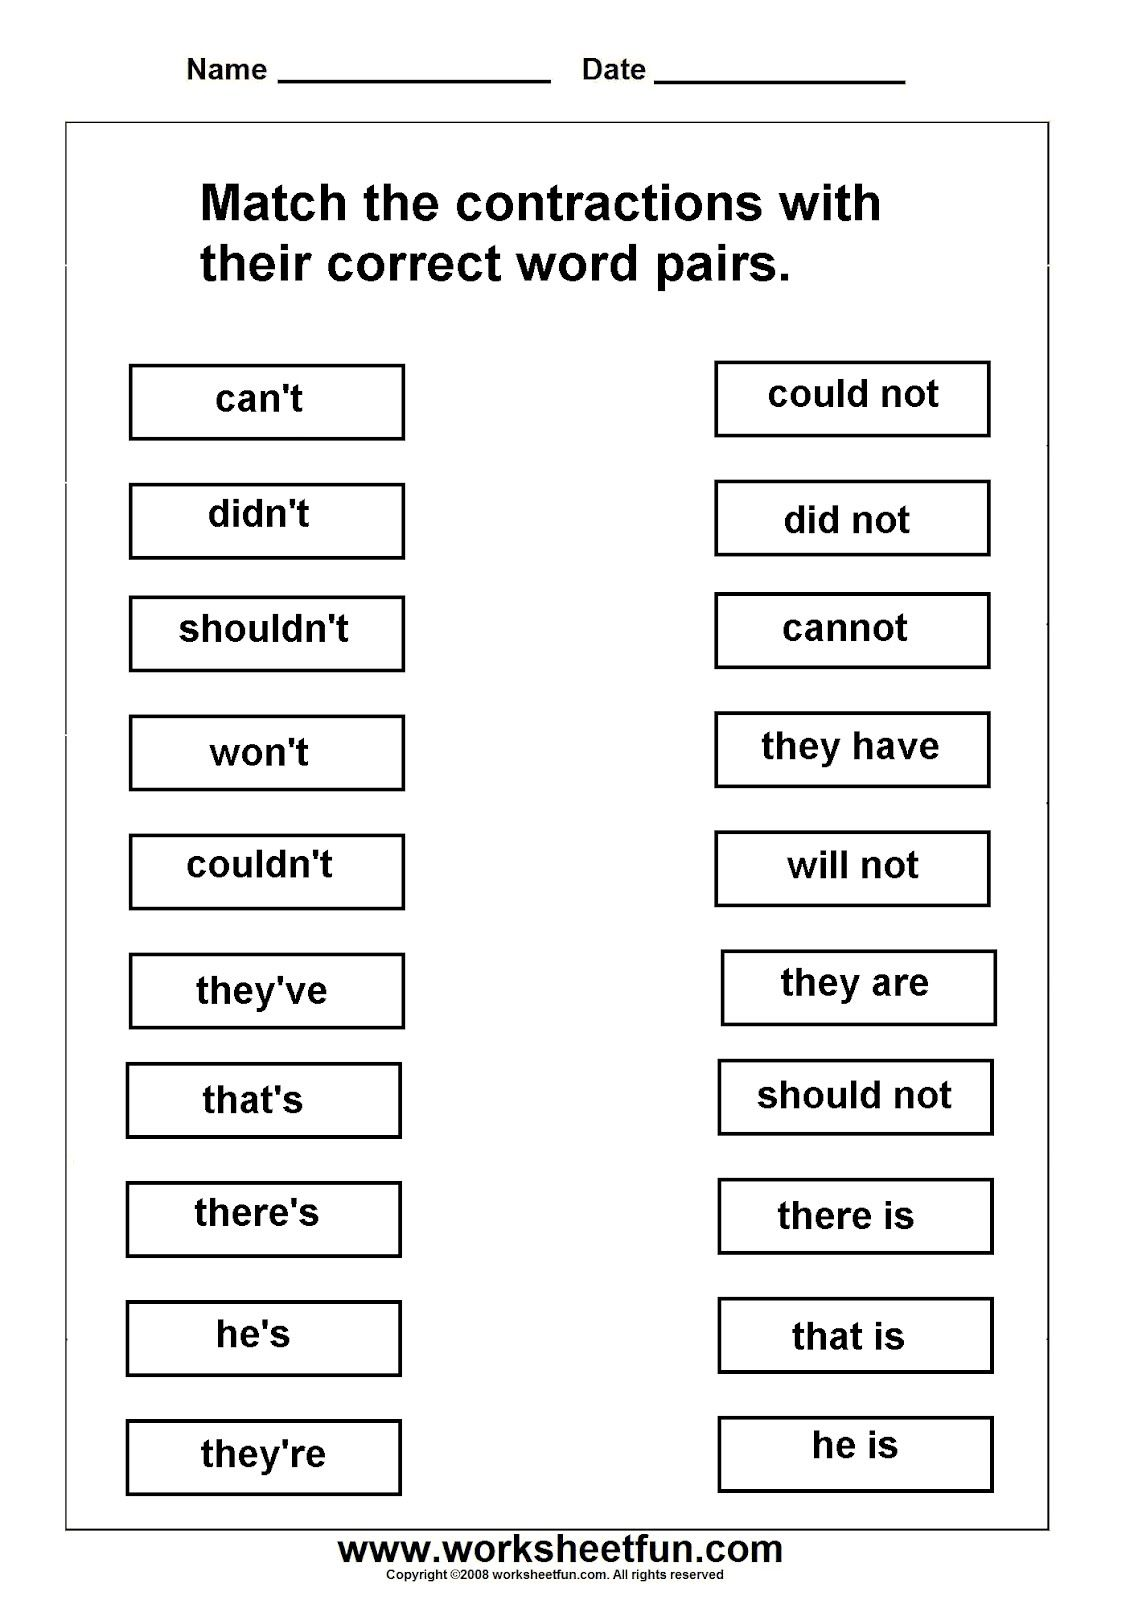 Worksheets Free Printable Contraction Worksheets contraction worksheets coin math kindergarten maths 1000 images about for lilly on pinterest 972a1520afba8faf75eaa47dd1ec1b87 con